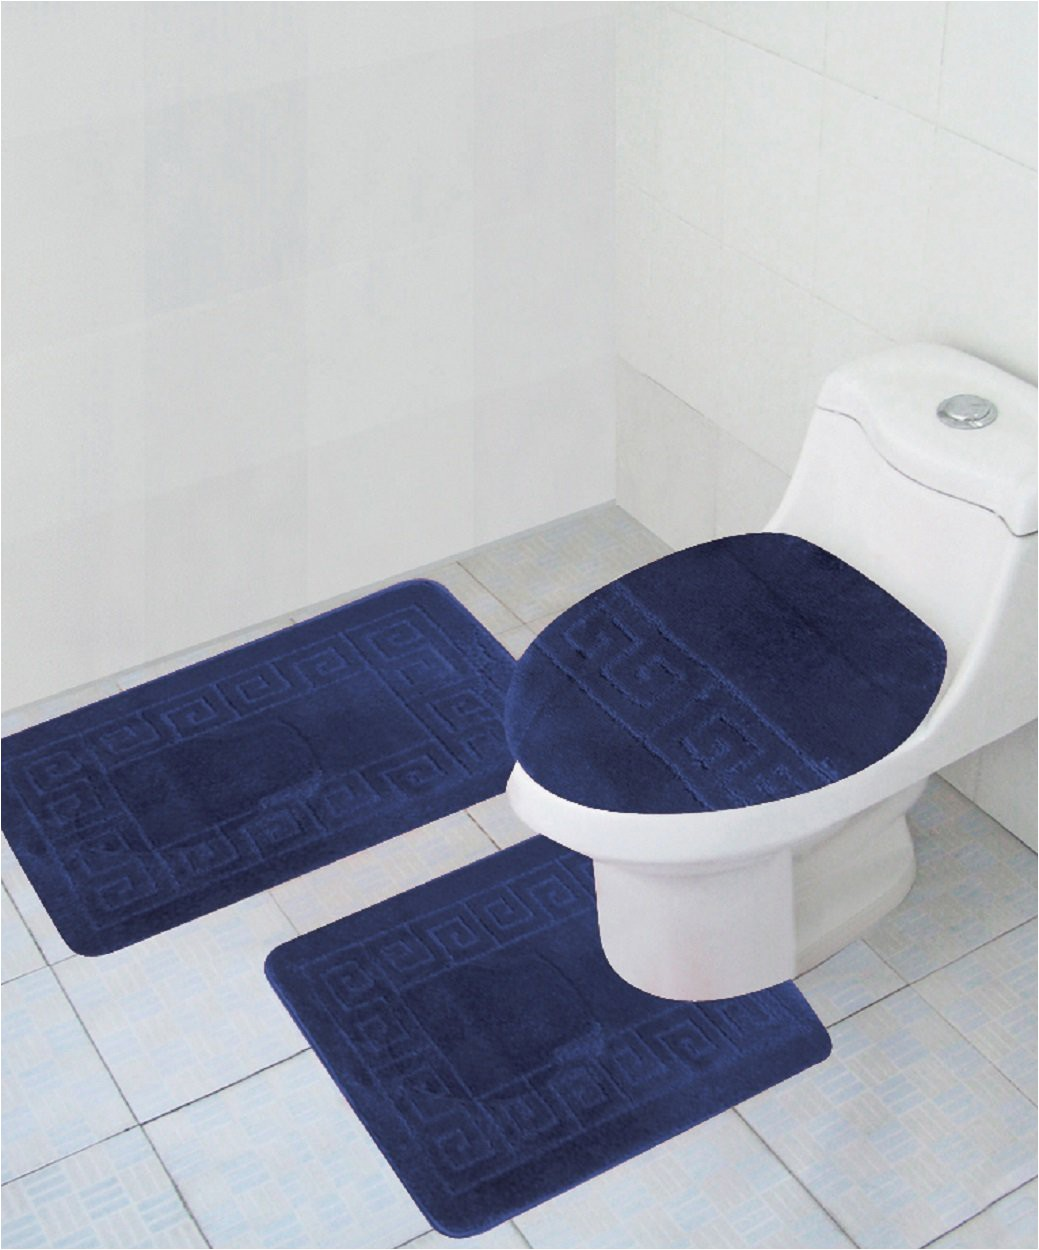 Jcpenney Contour Bath Rugs Jcpenney Bathroom Rugs Sets Image Of Bathroom and Closet